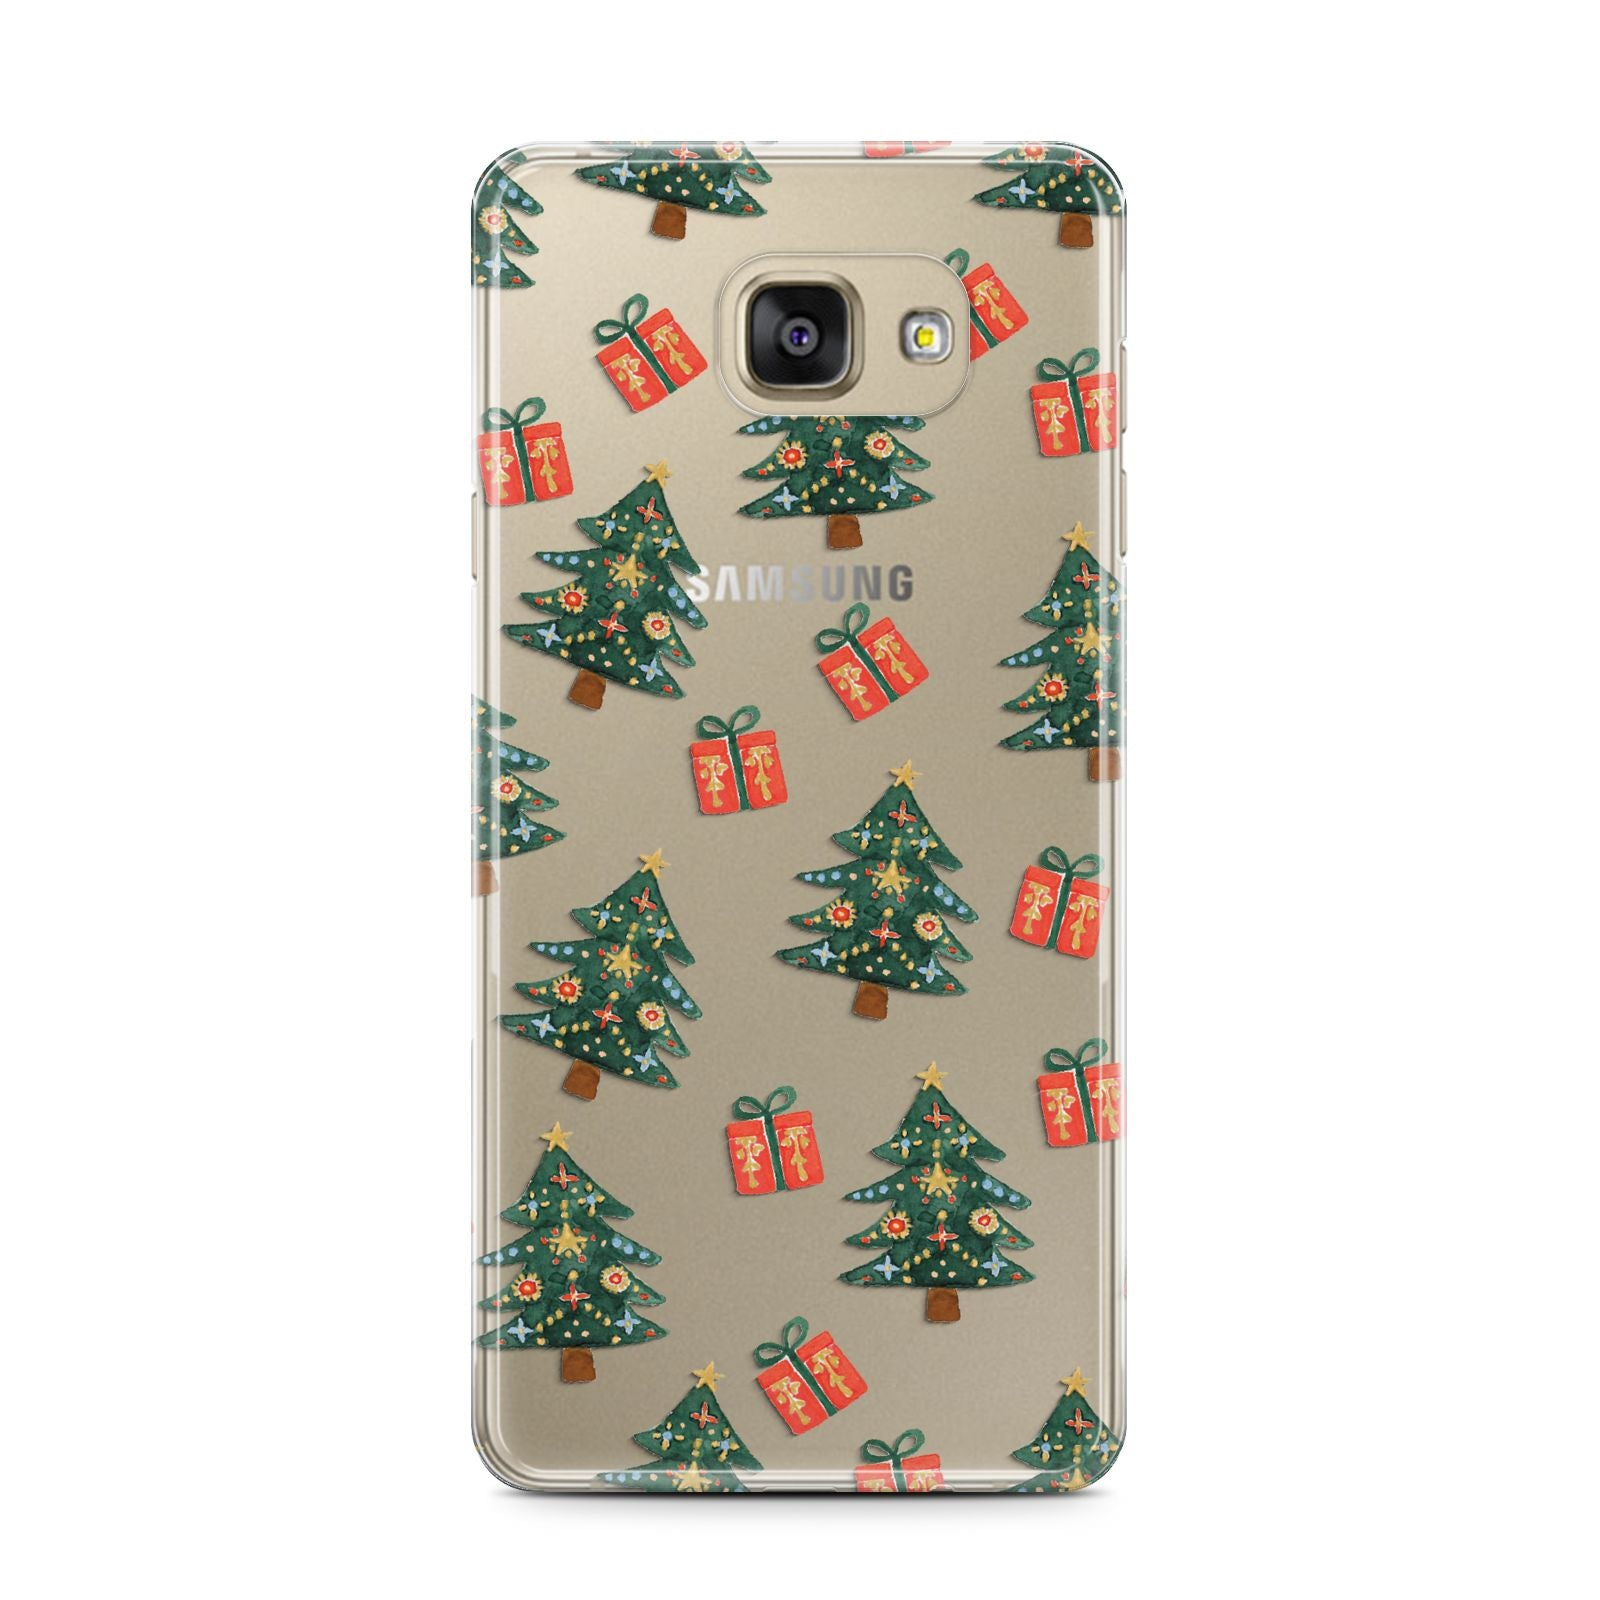 Christmas tree and presents Samsung Galaxy A7 2016 Case on gold phone